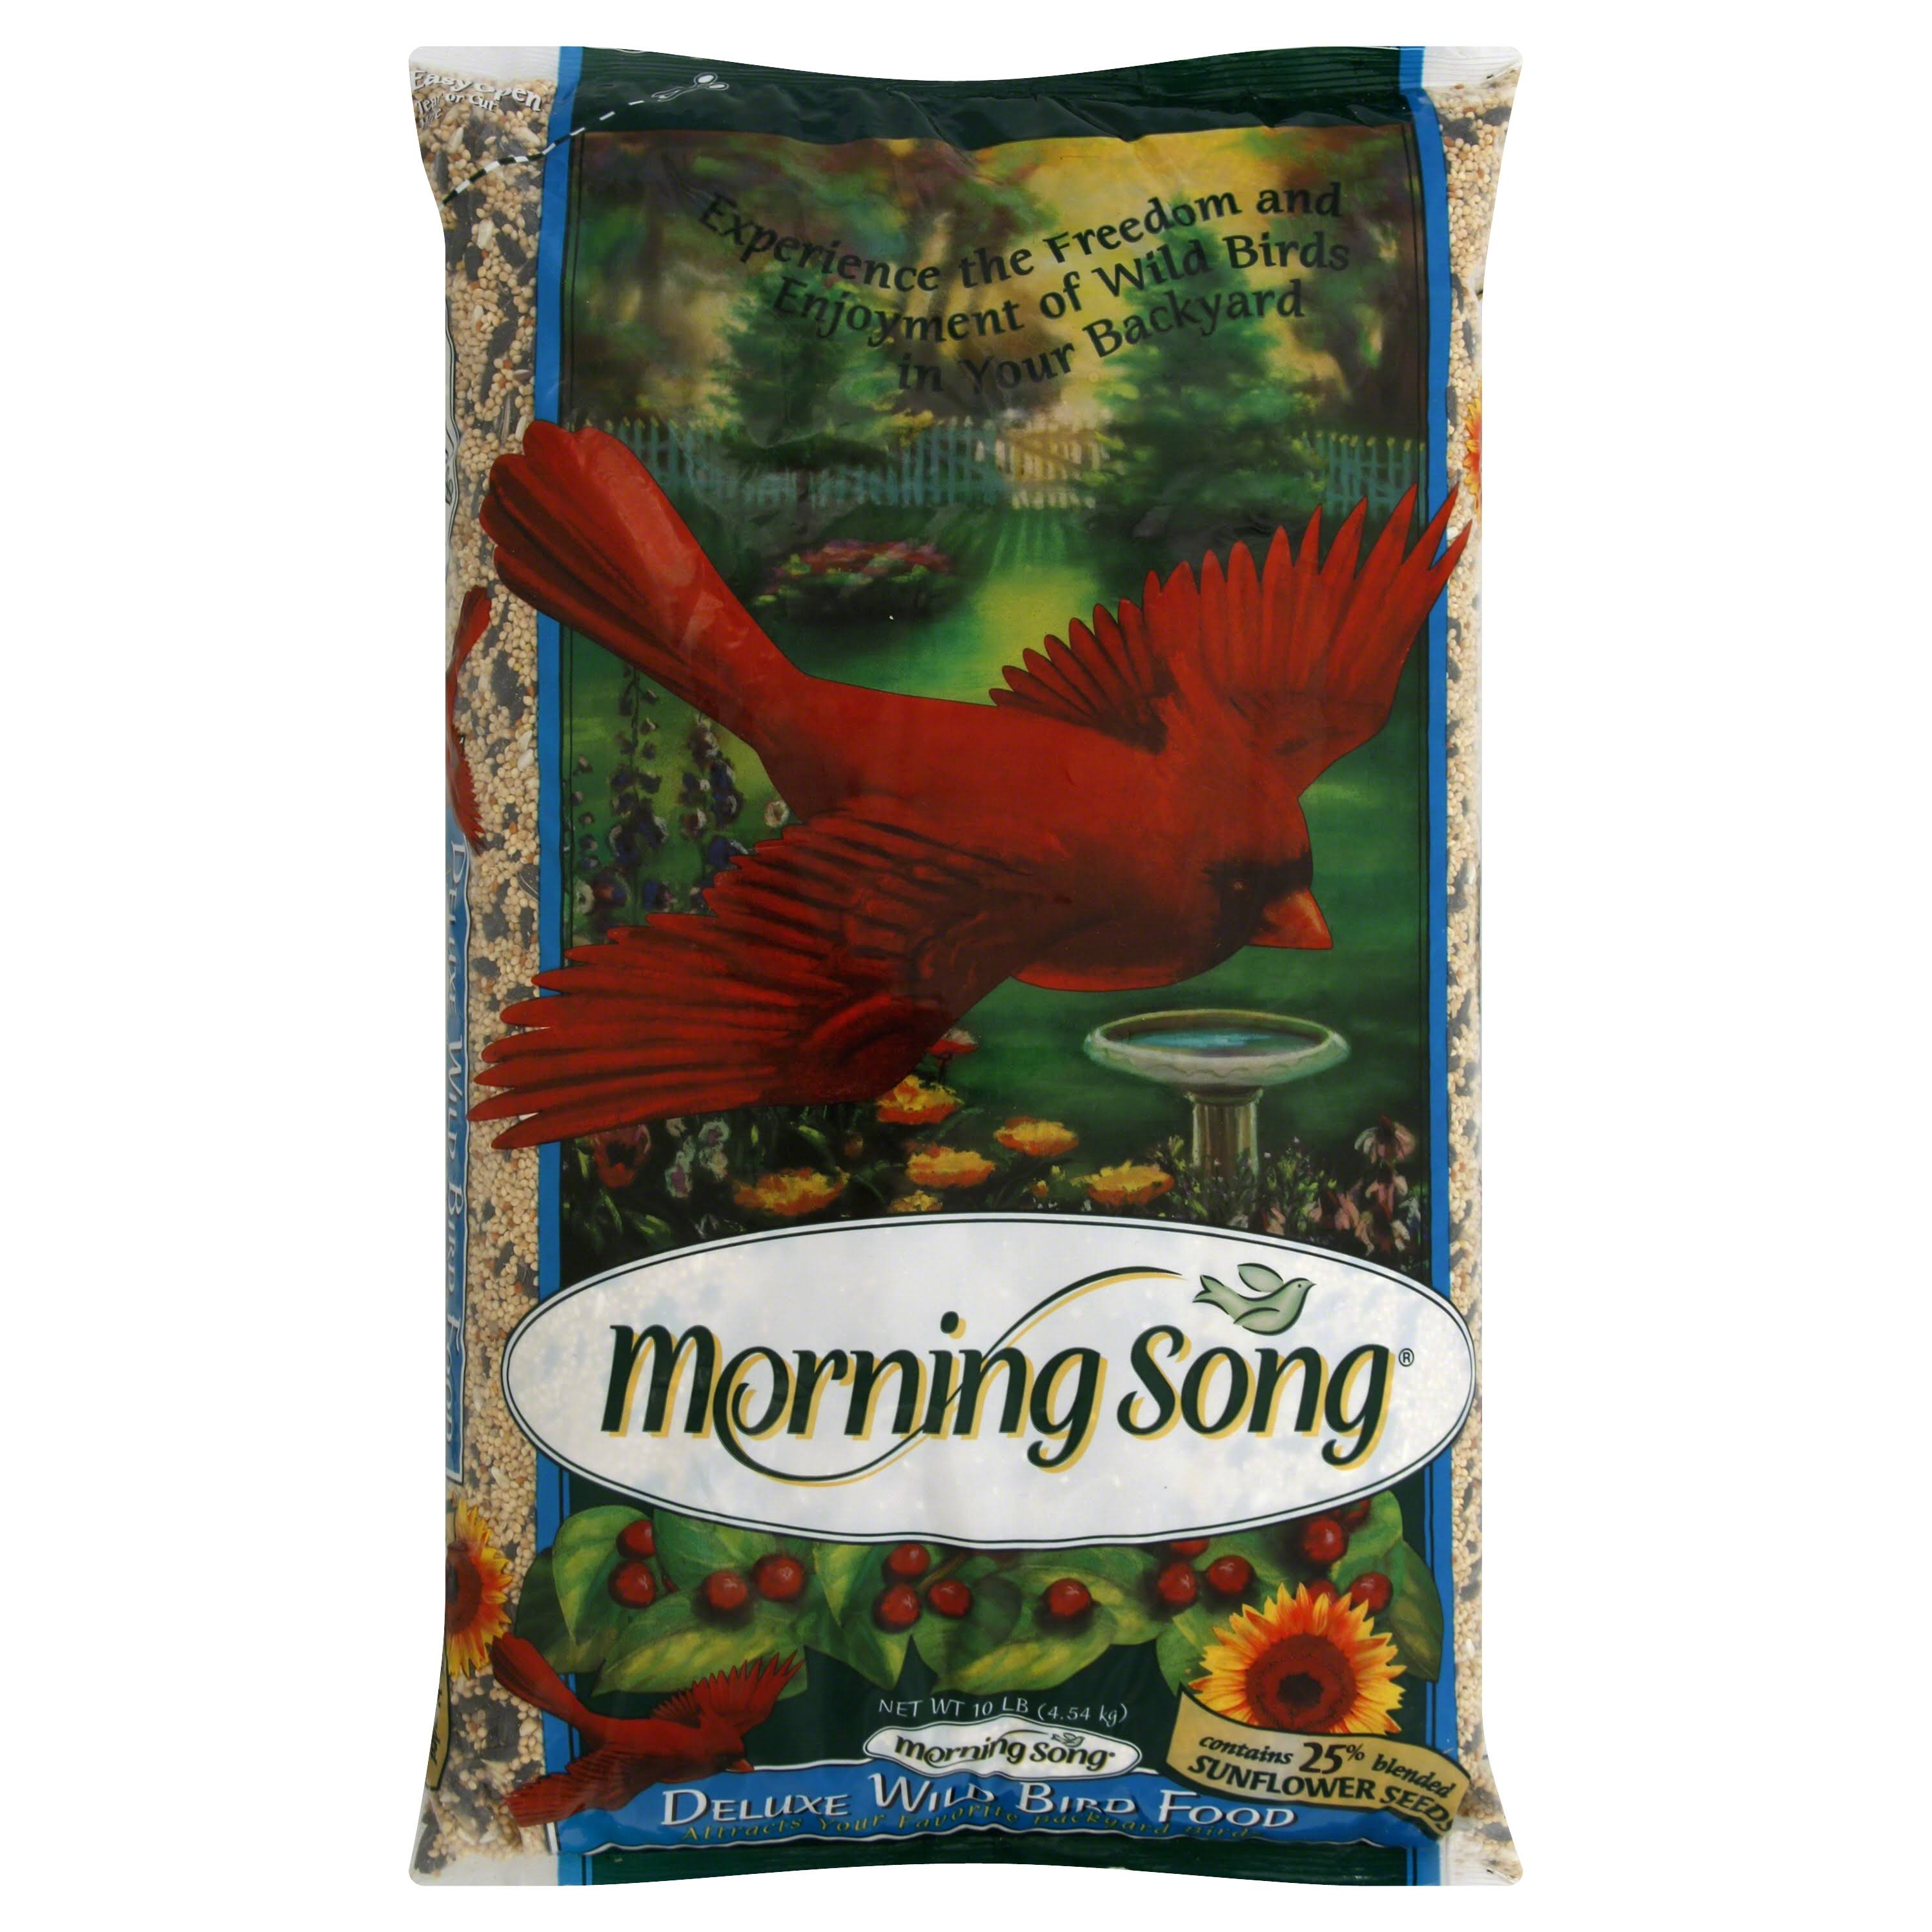 Morning Song 11963 Deluxe Wild Bird Food - 10lbs